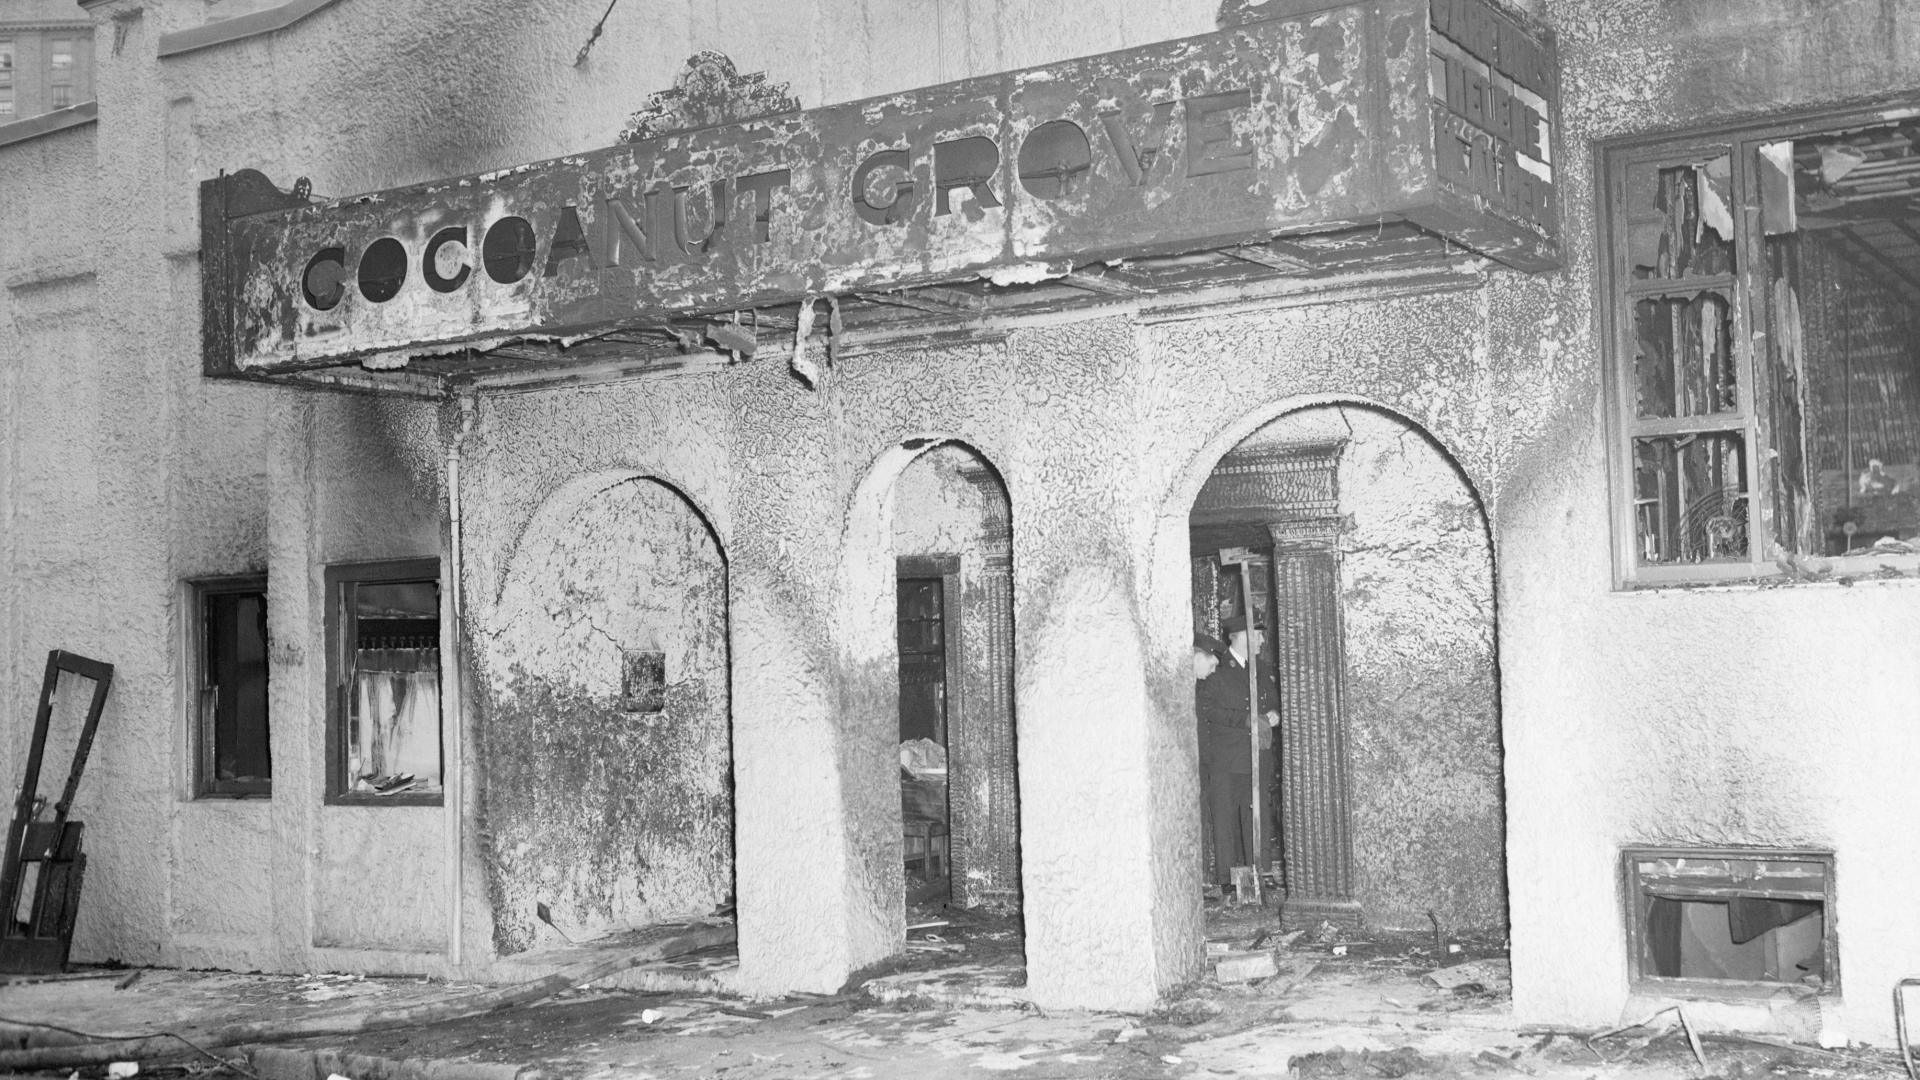 Firemen looking through the remains of Boston's Cocoanut Grove night club through the revolving doors leading to the tiny 10-foot-wide vestibule where stampeding guests were crushed and smothered as they tried to leave the burning club. (Credit: Bettmann Archive/Getty Images)